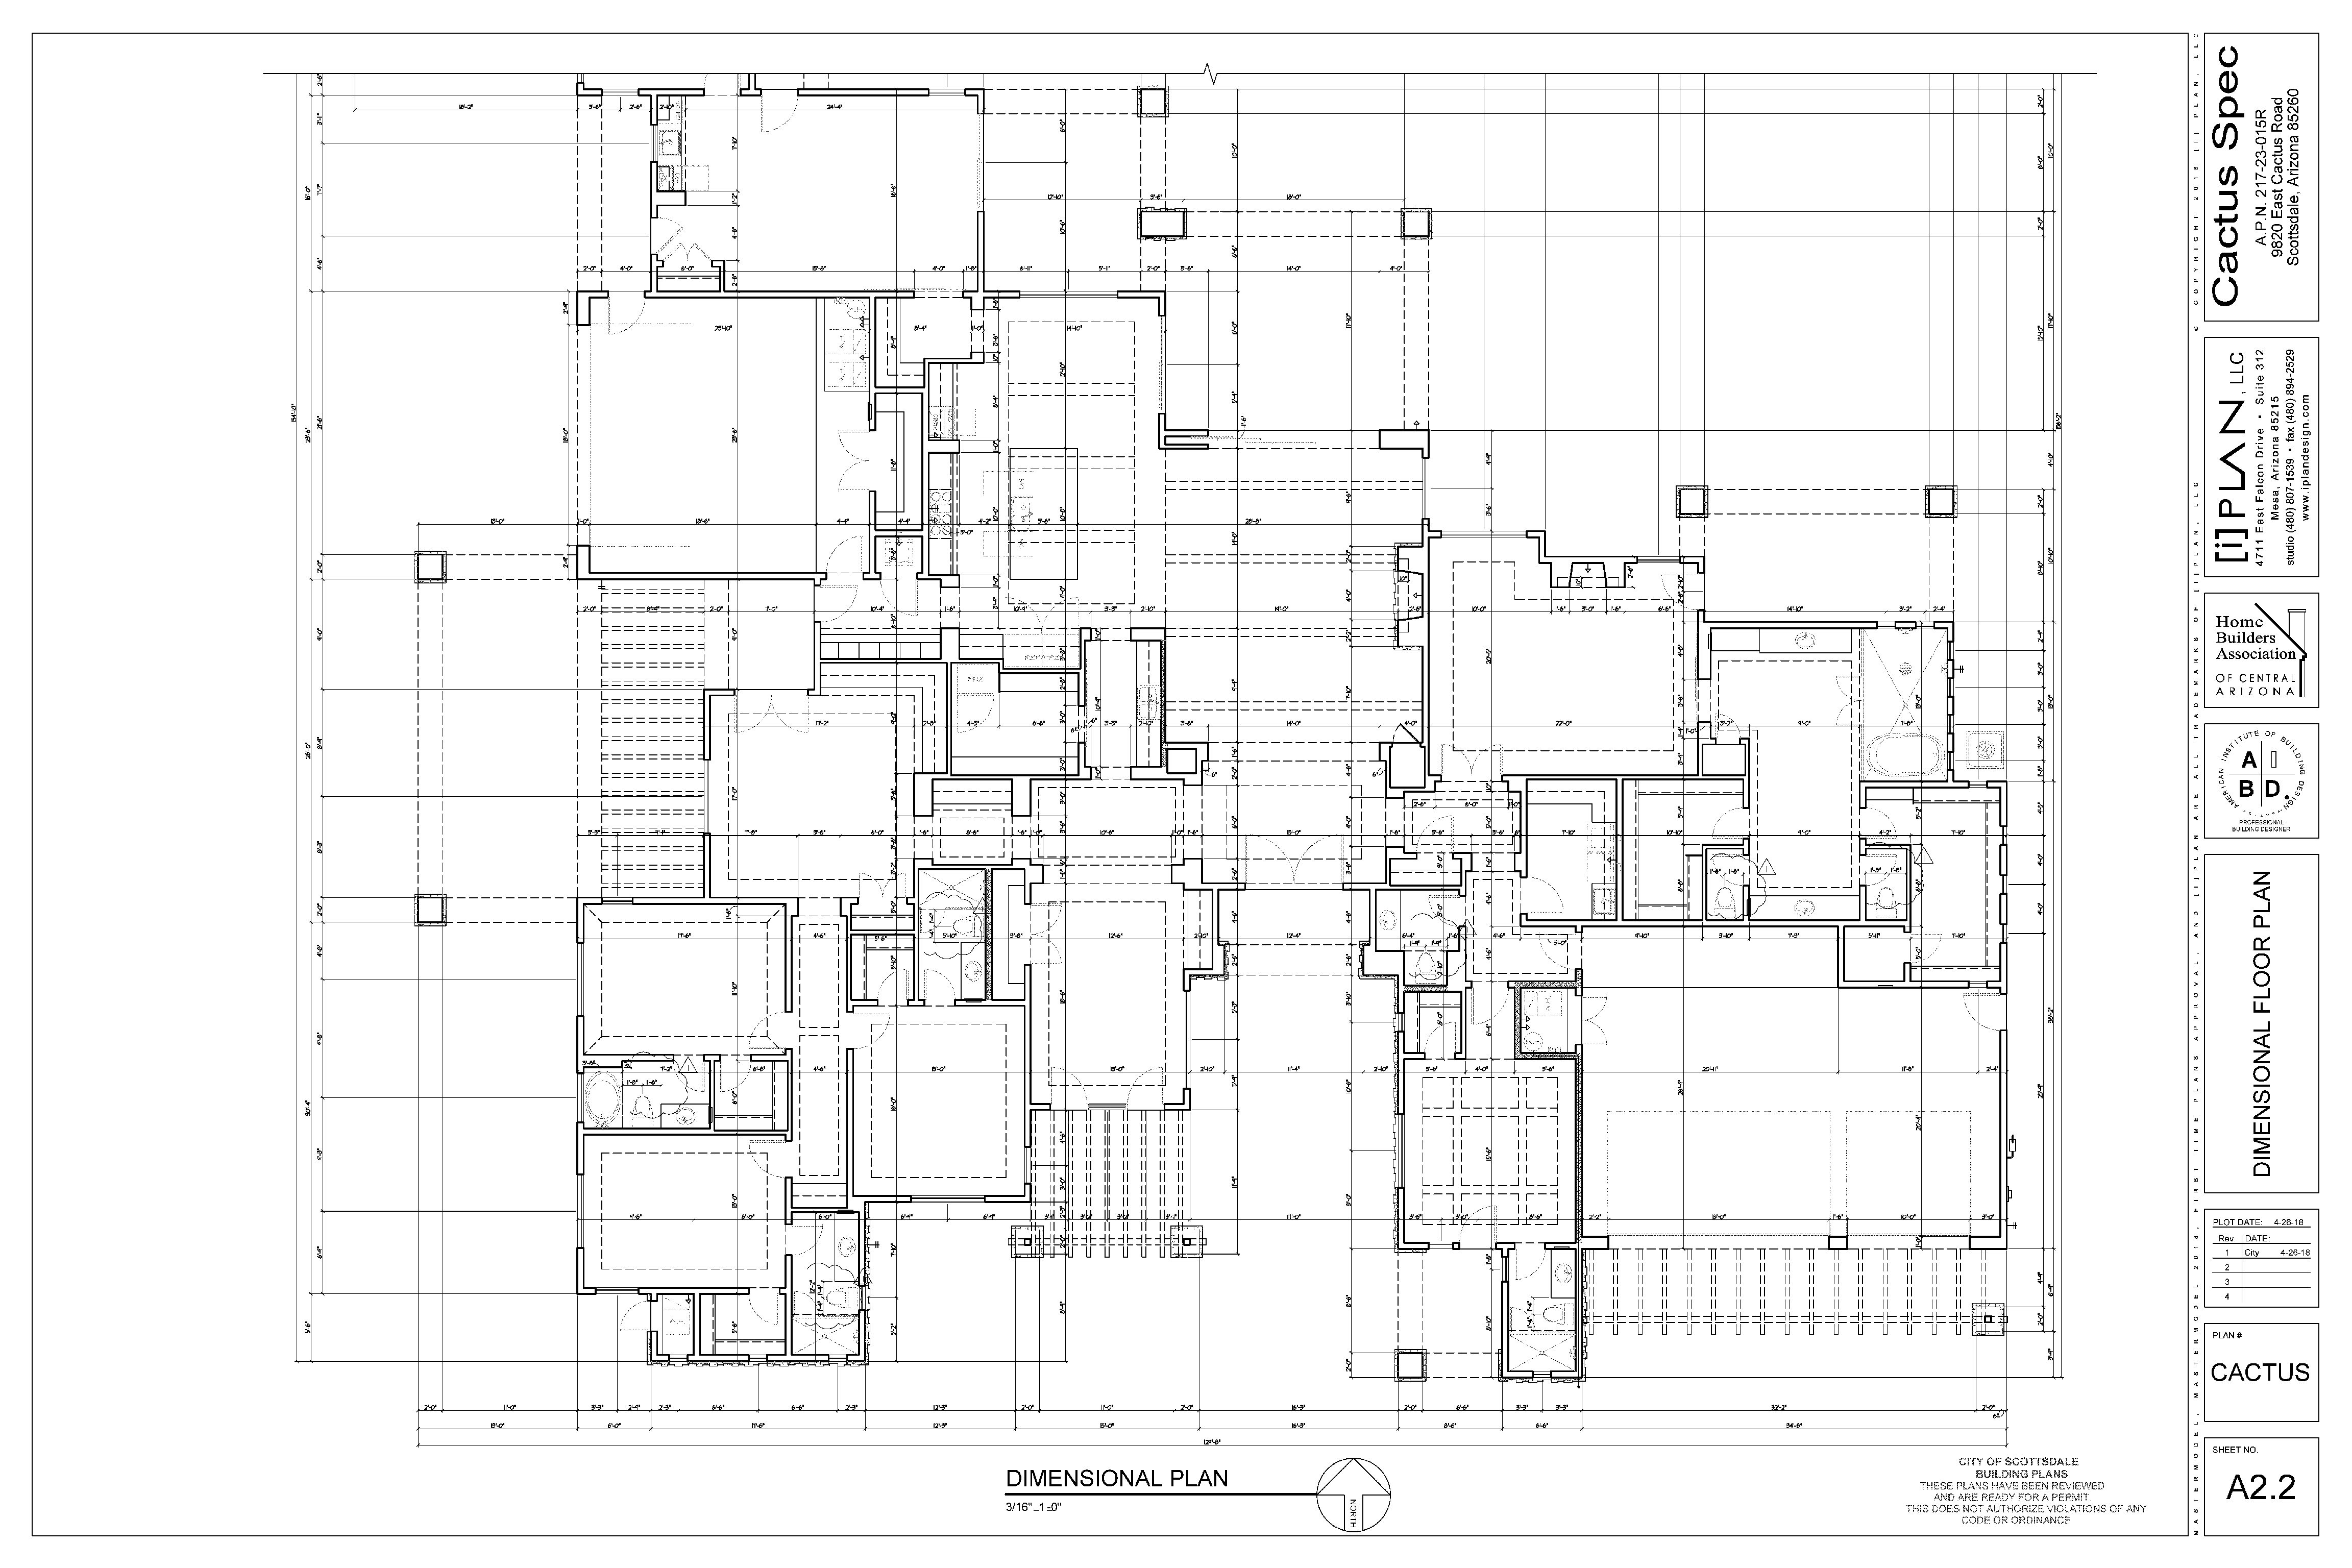 modern-french-farm 007-A2.2.Dimensional Floorplan